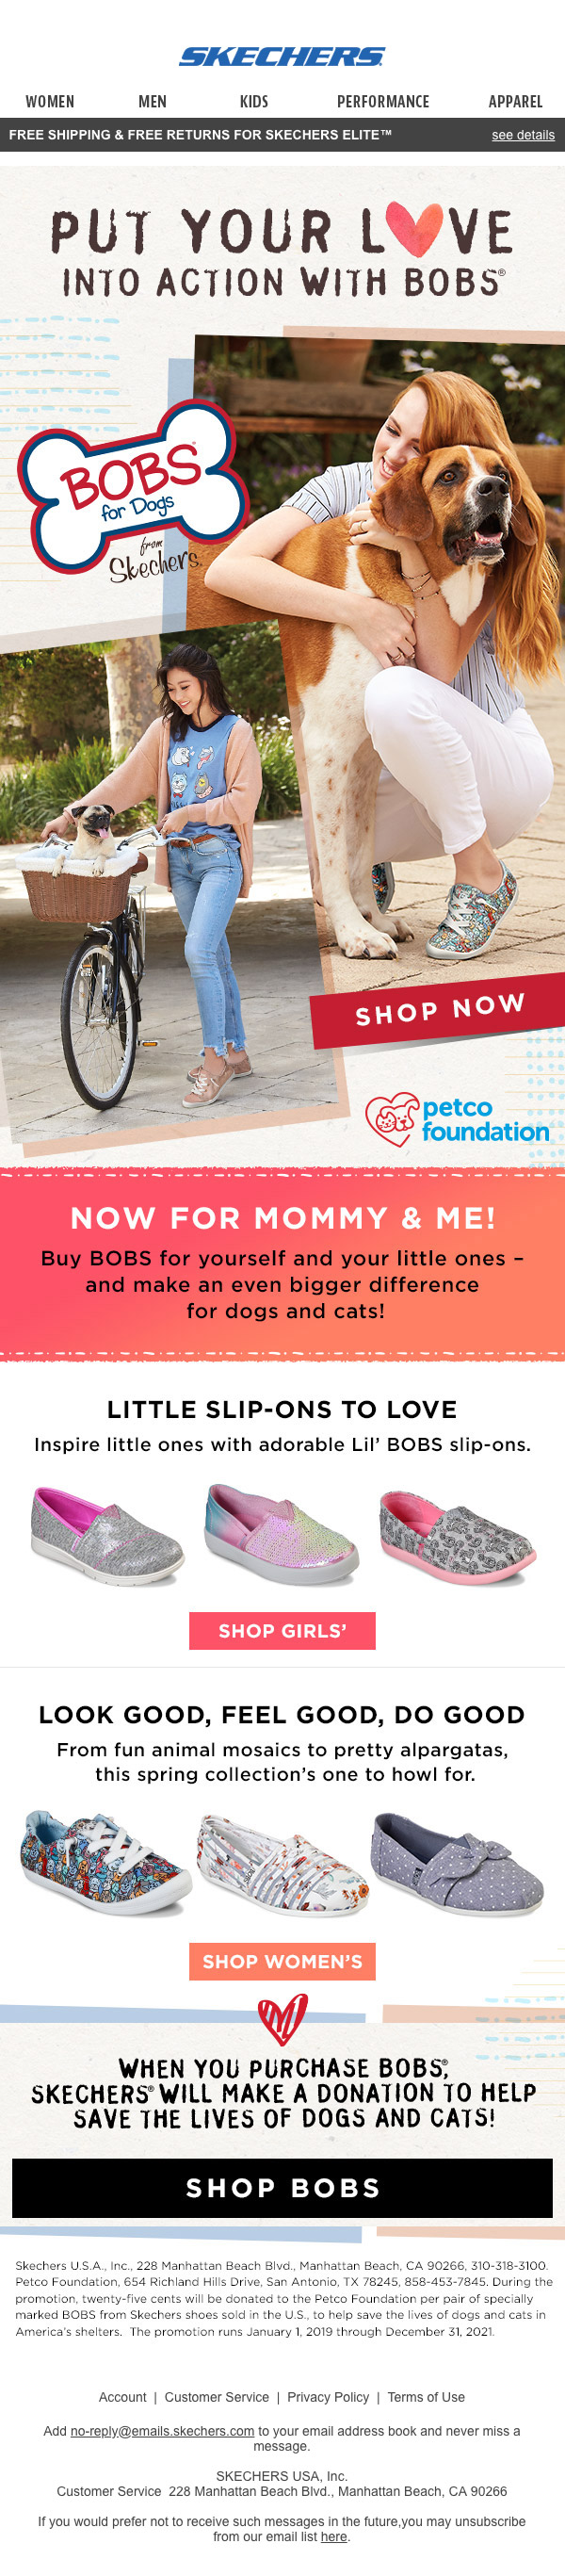 EML35387_BOBS_LILBOBS_wmn_kids_MARCH15_2019_MOCKUP